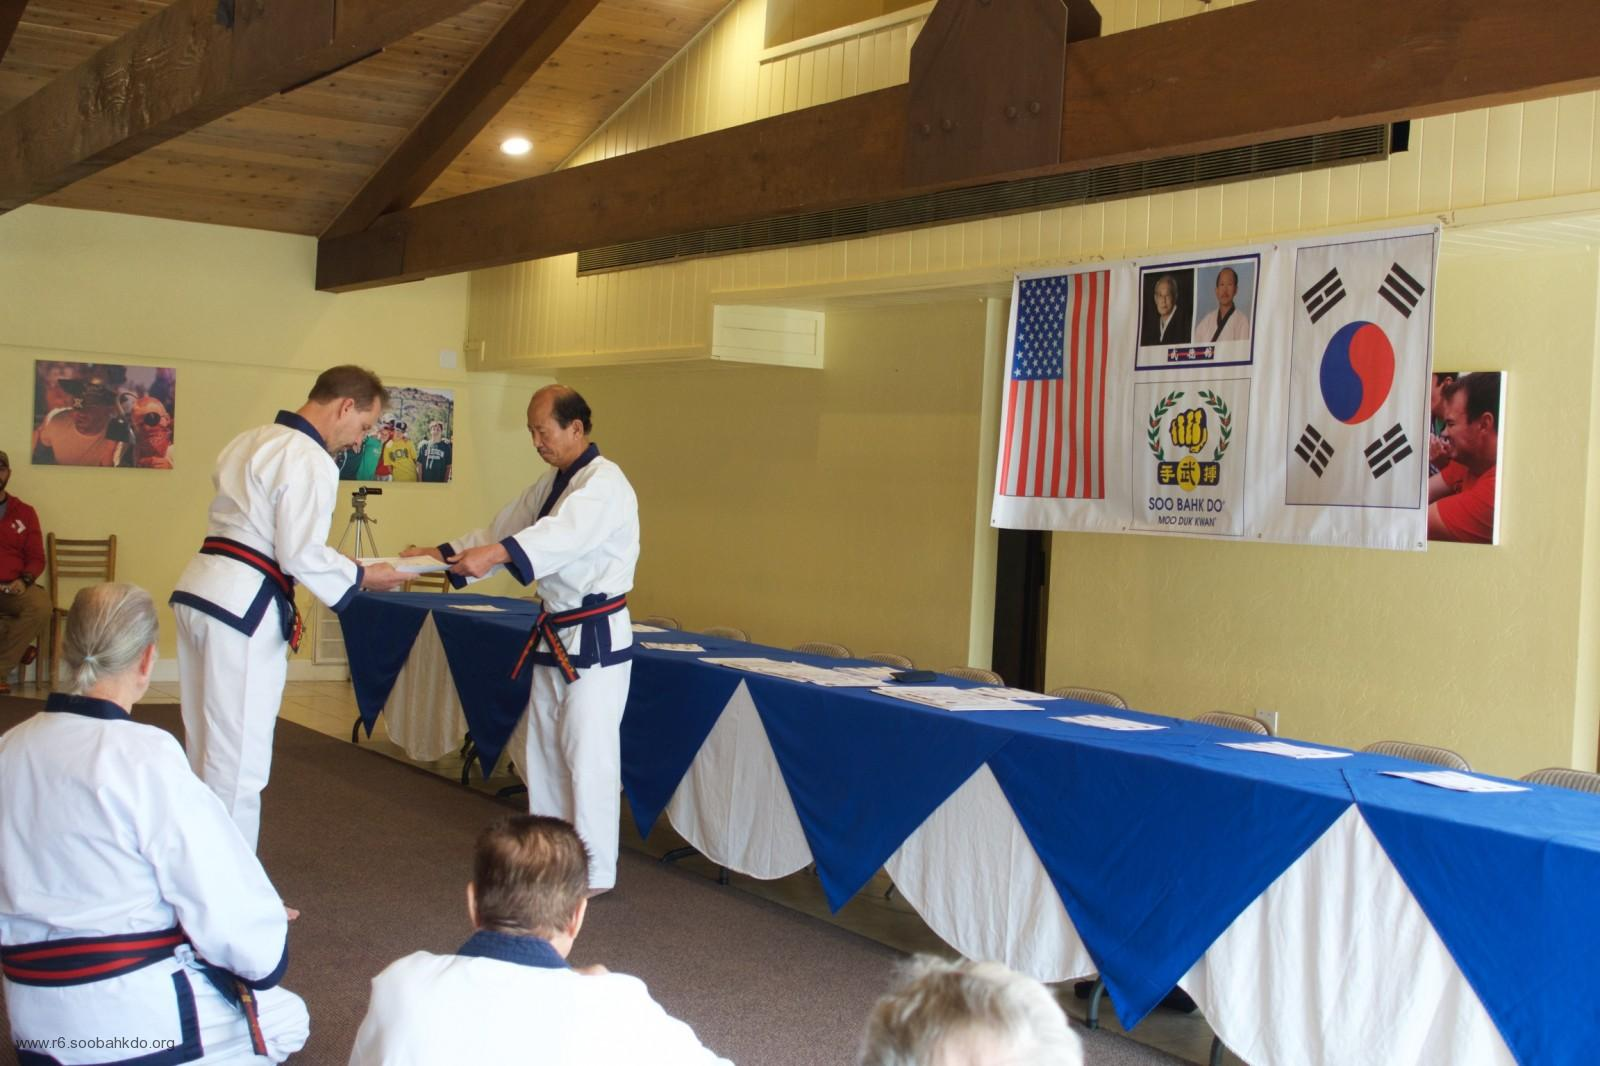 Kris Poole Receives Moo Duk Kwan 8th Dan Certificate